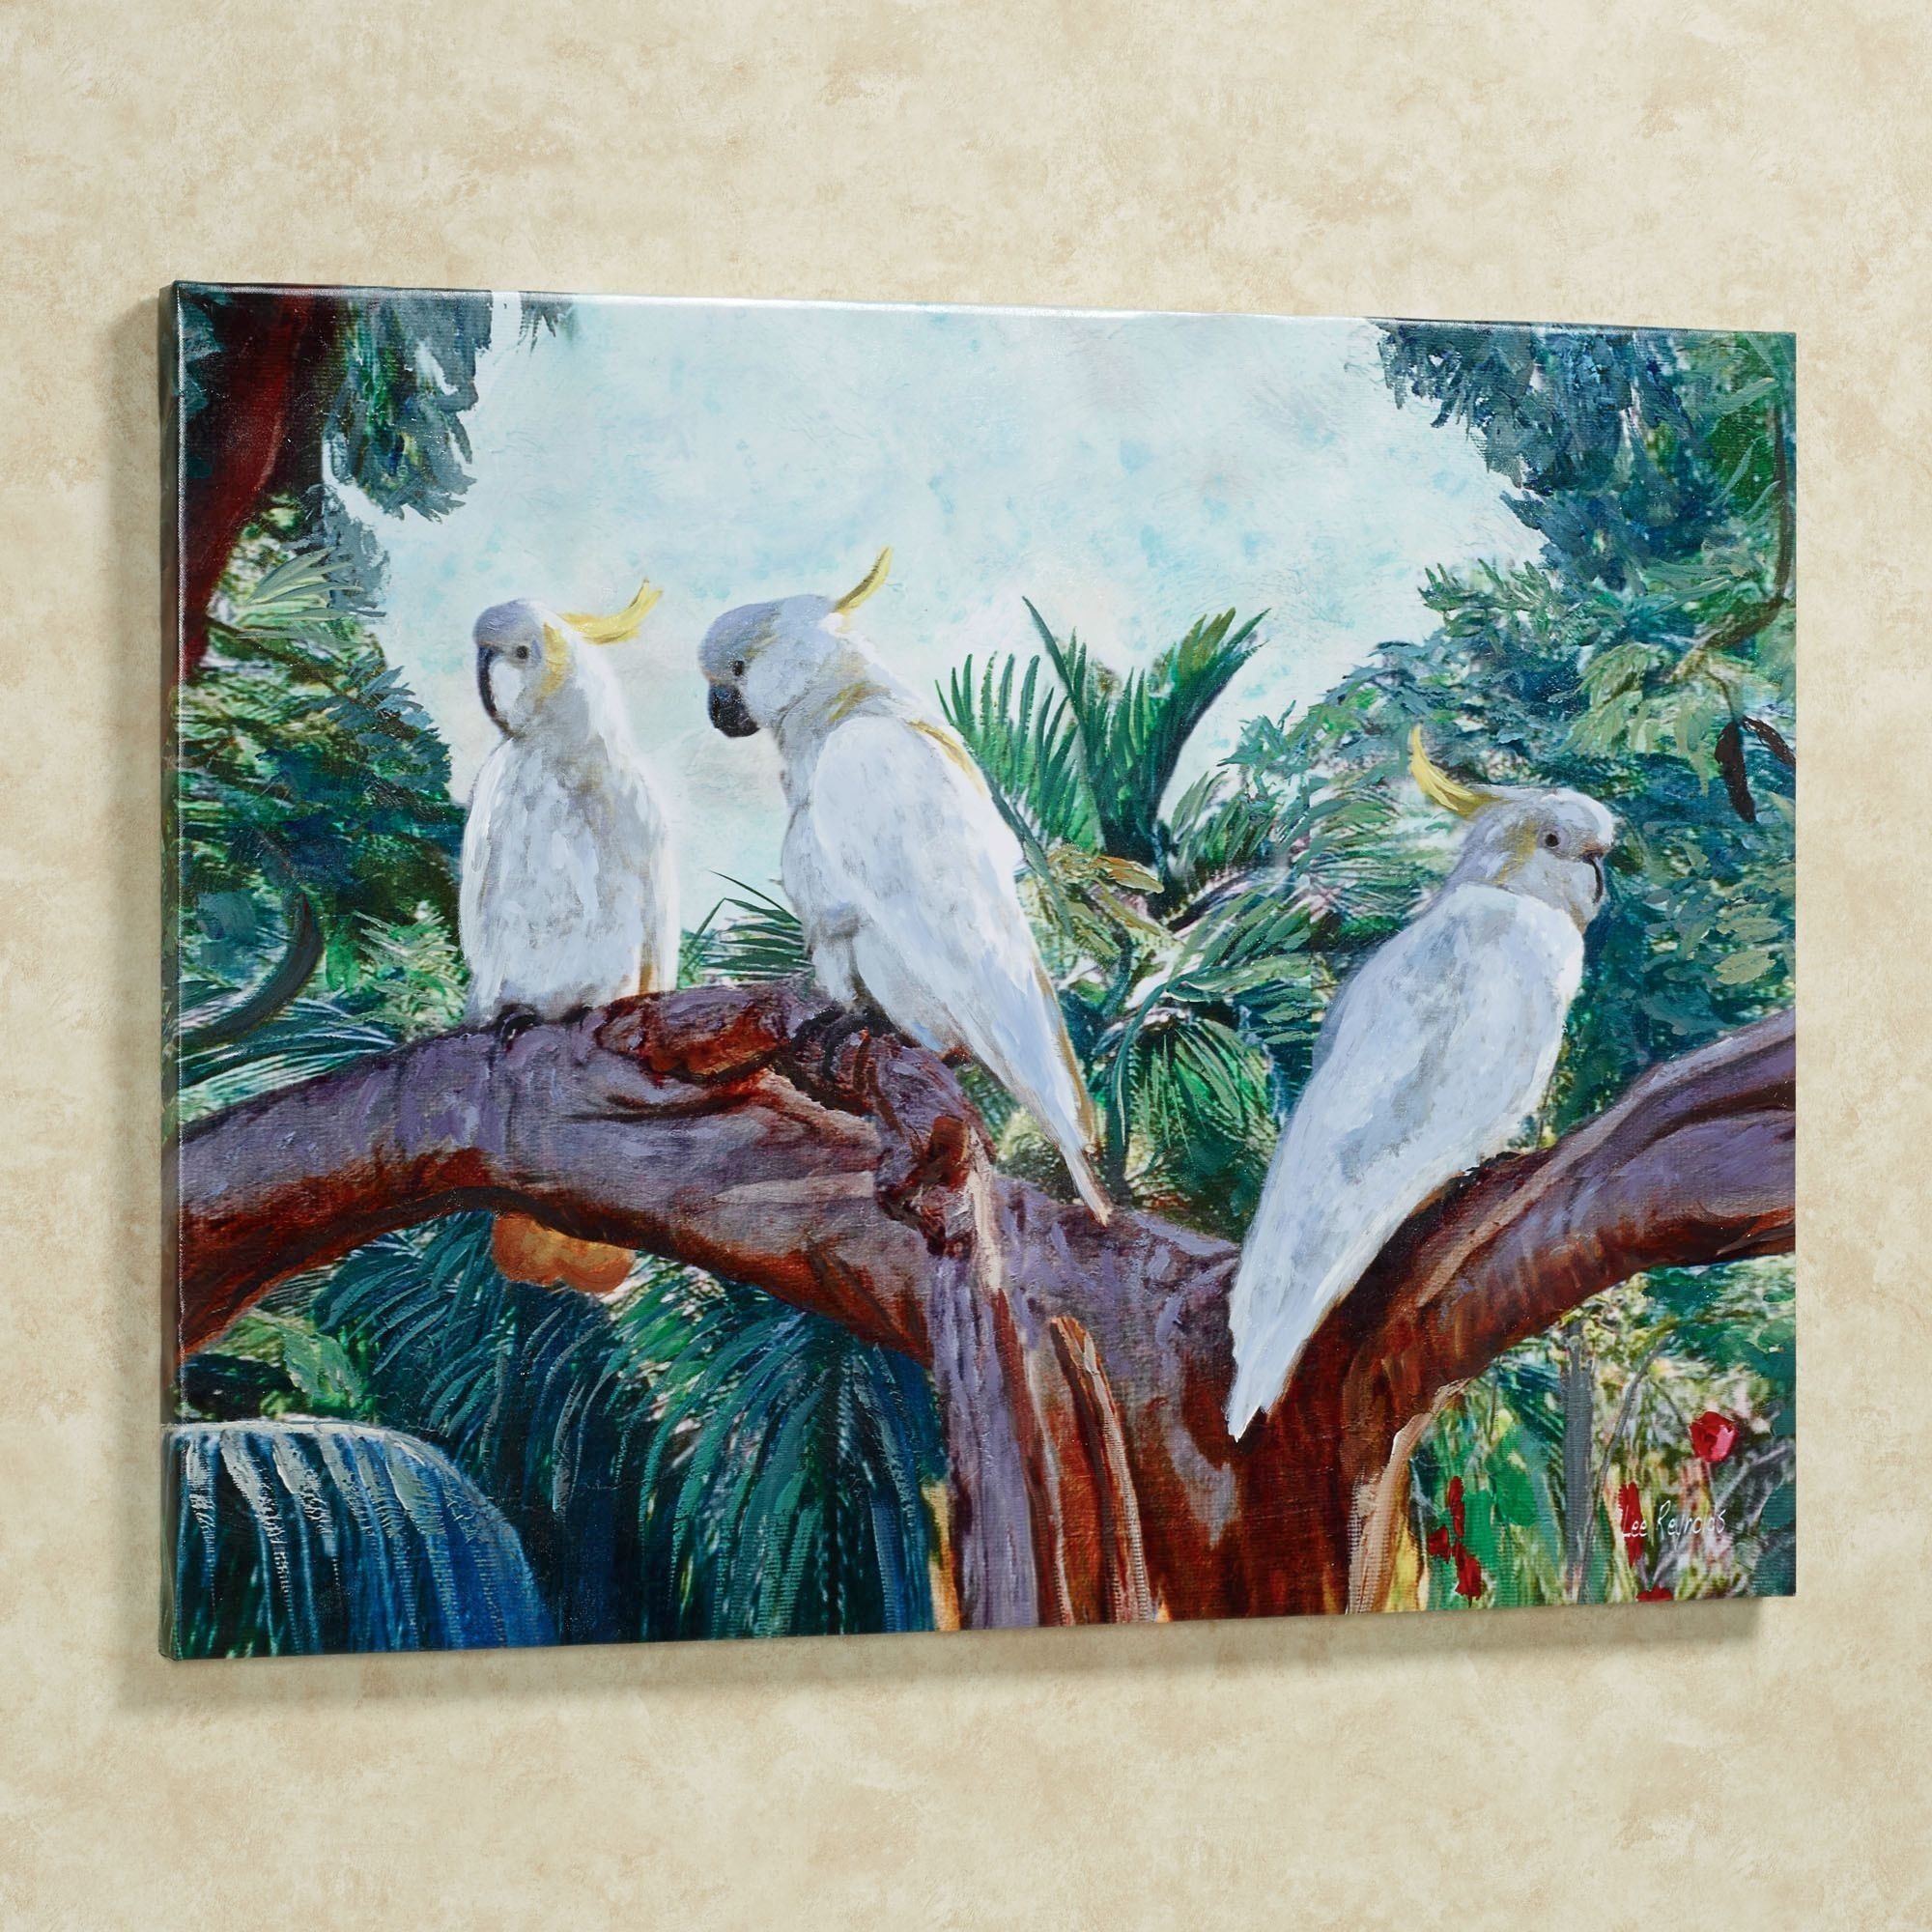 Cockatrio Cockatoo Birds Canvas Wall Art In Most Recent Birds Canvas Wall Art (View 5 of 15)